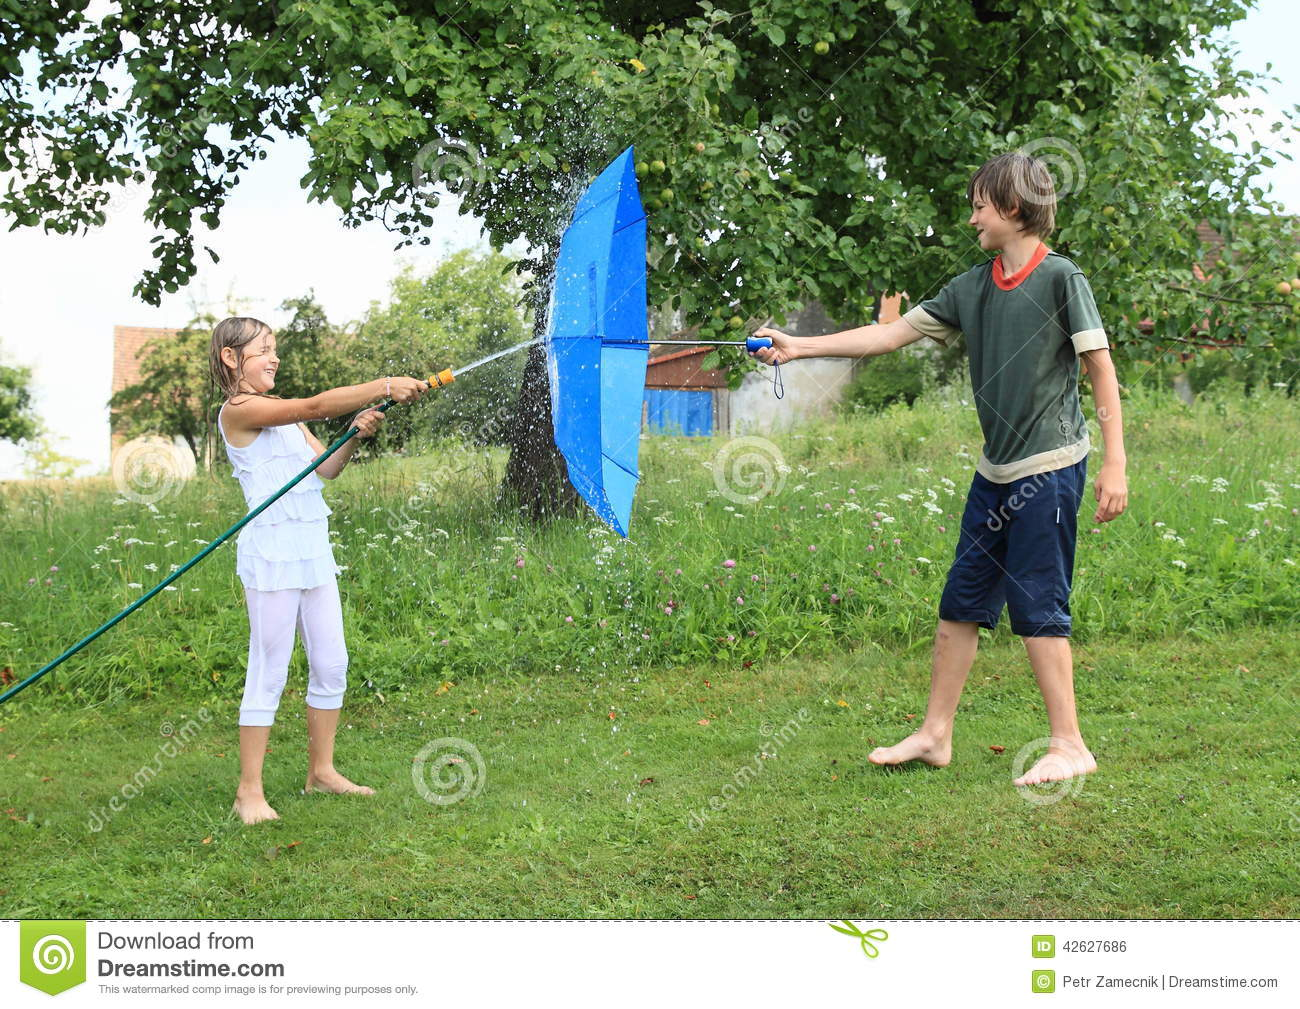 ... water with garden hose against a boy with blue umbrella as a shield